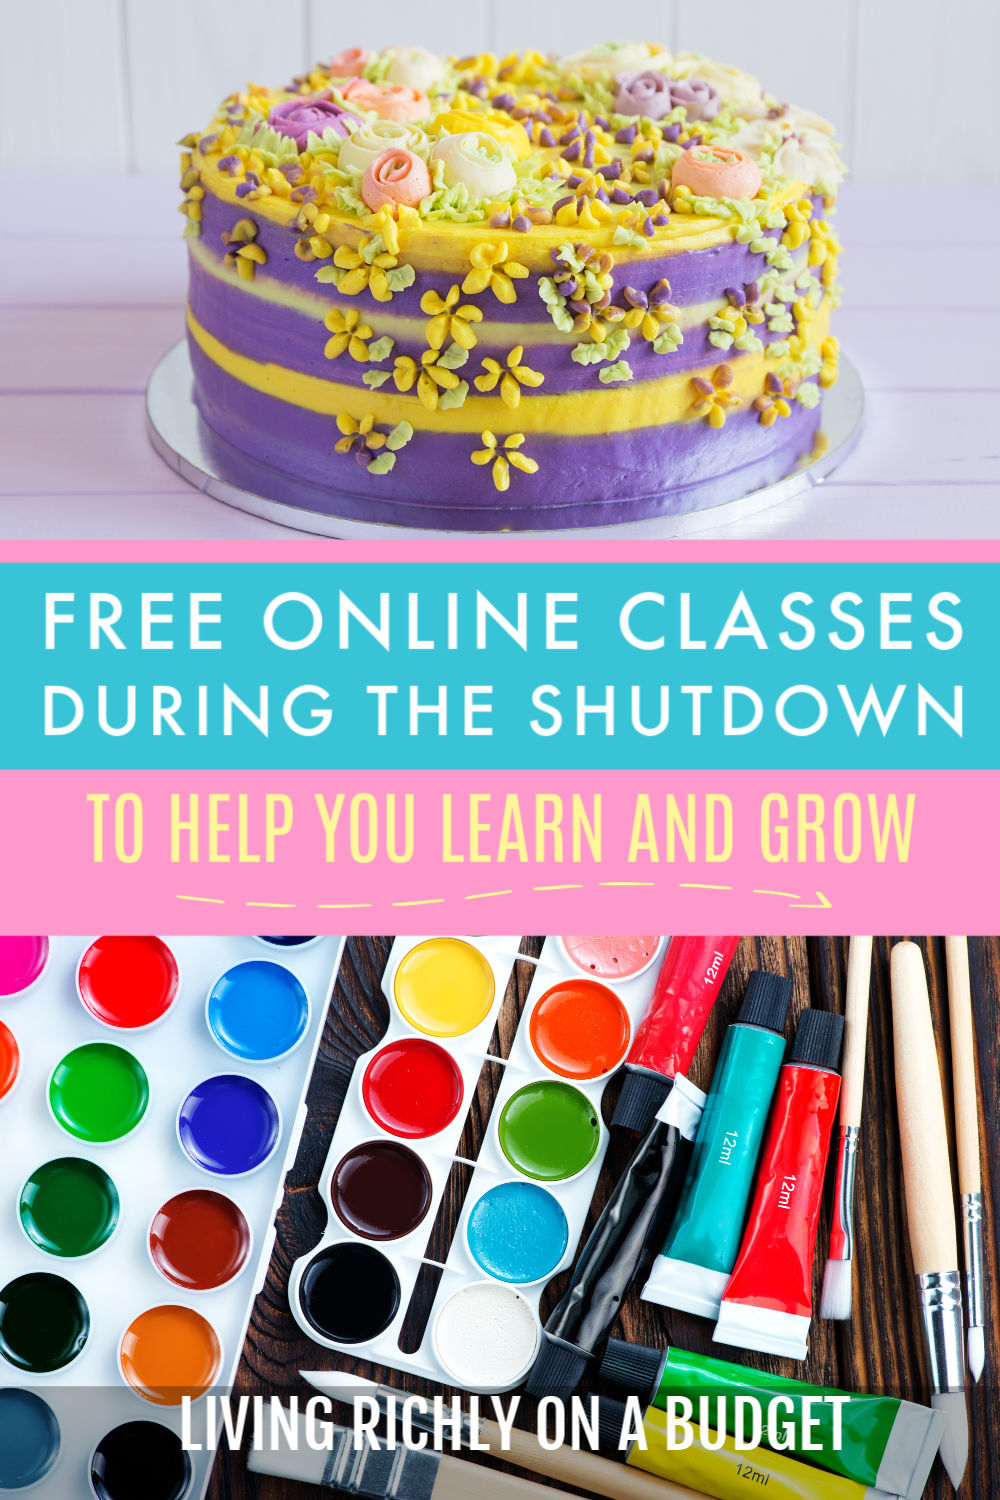 Free Online Classes During the Shutdown